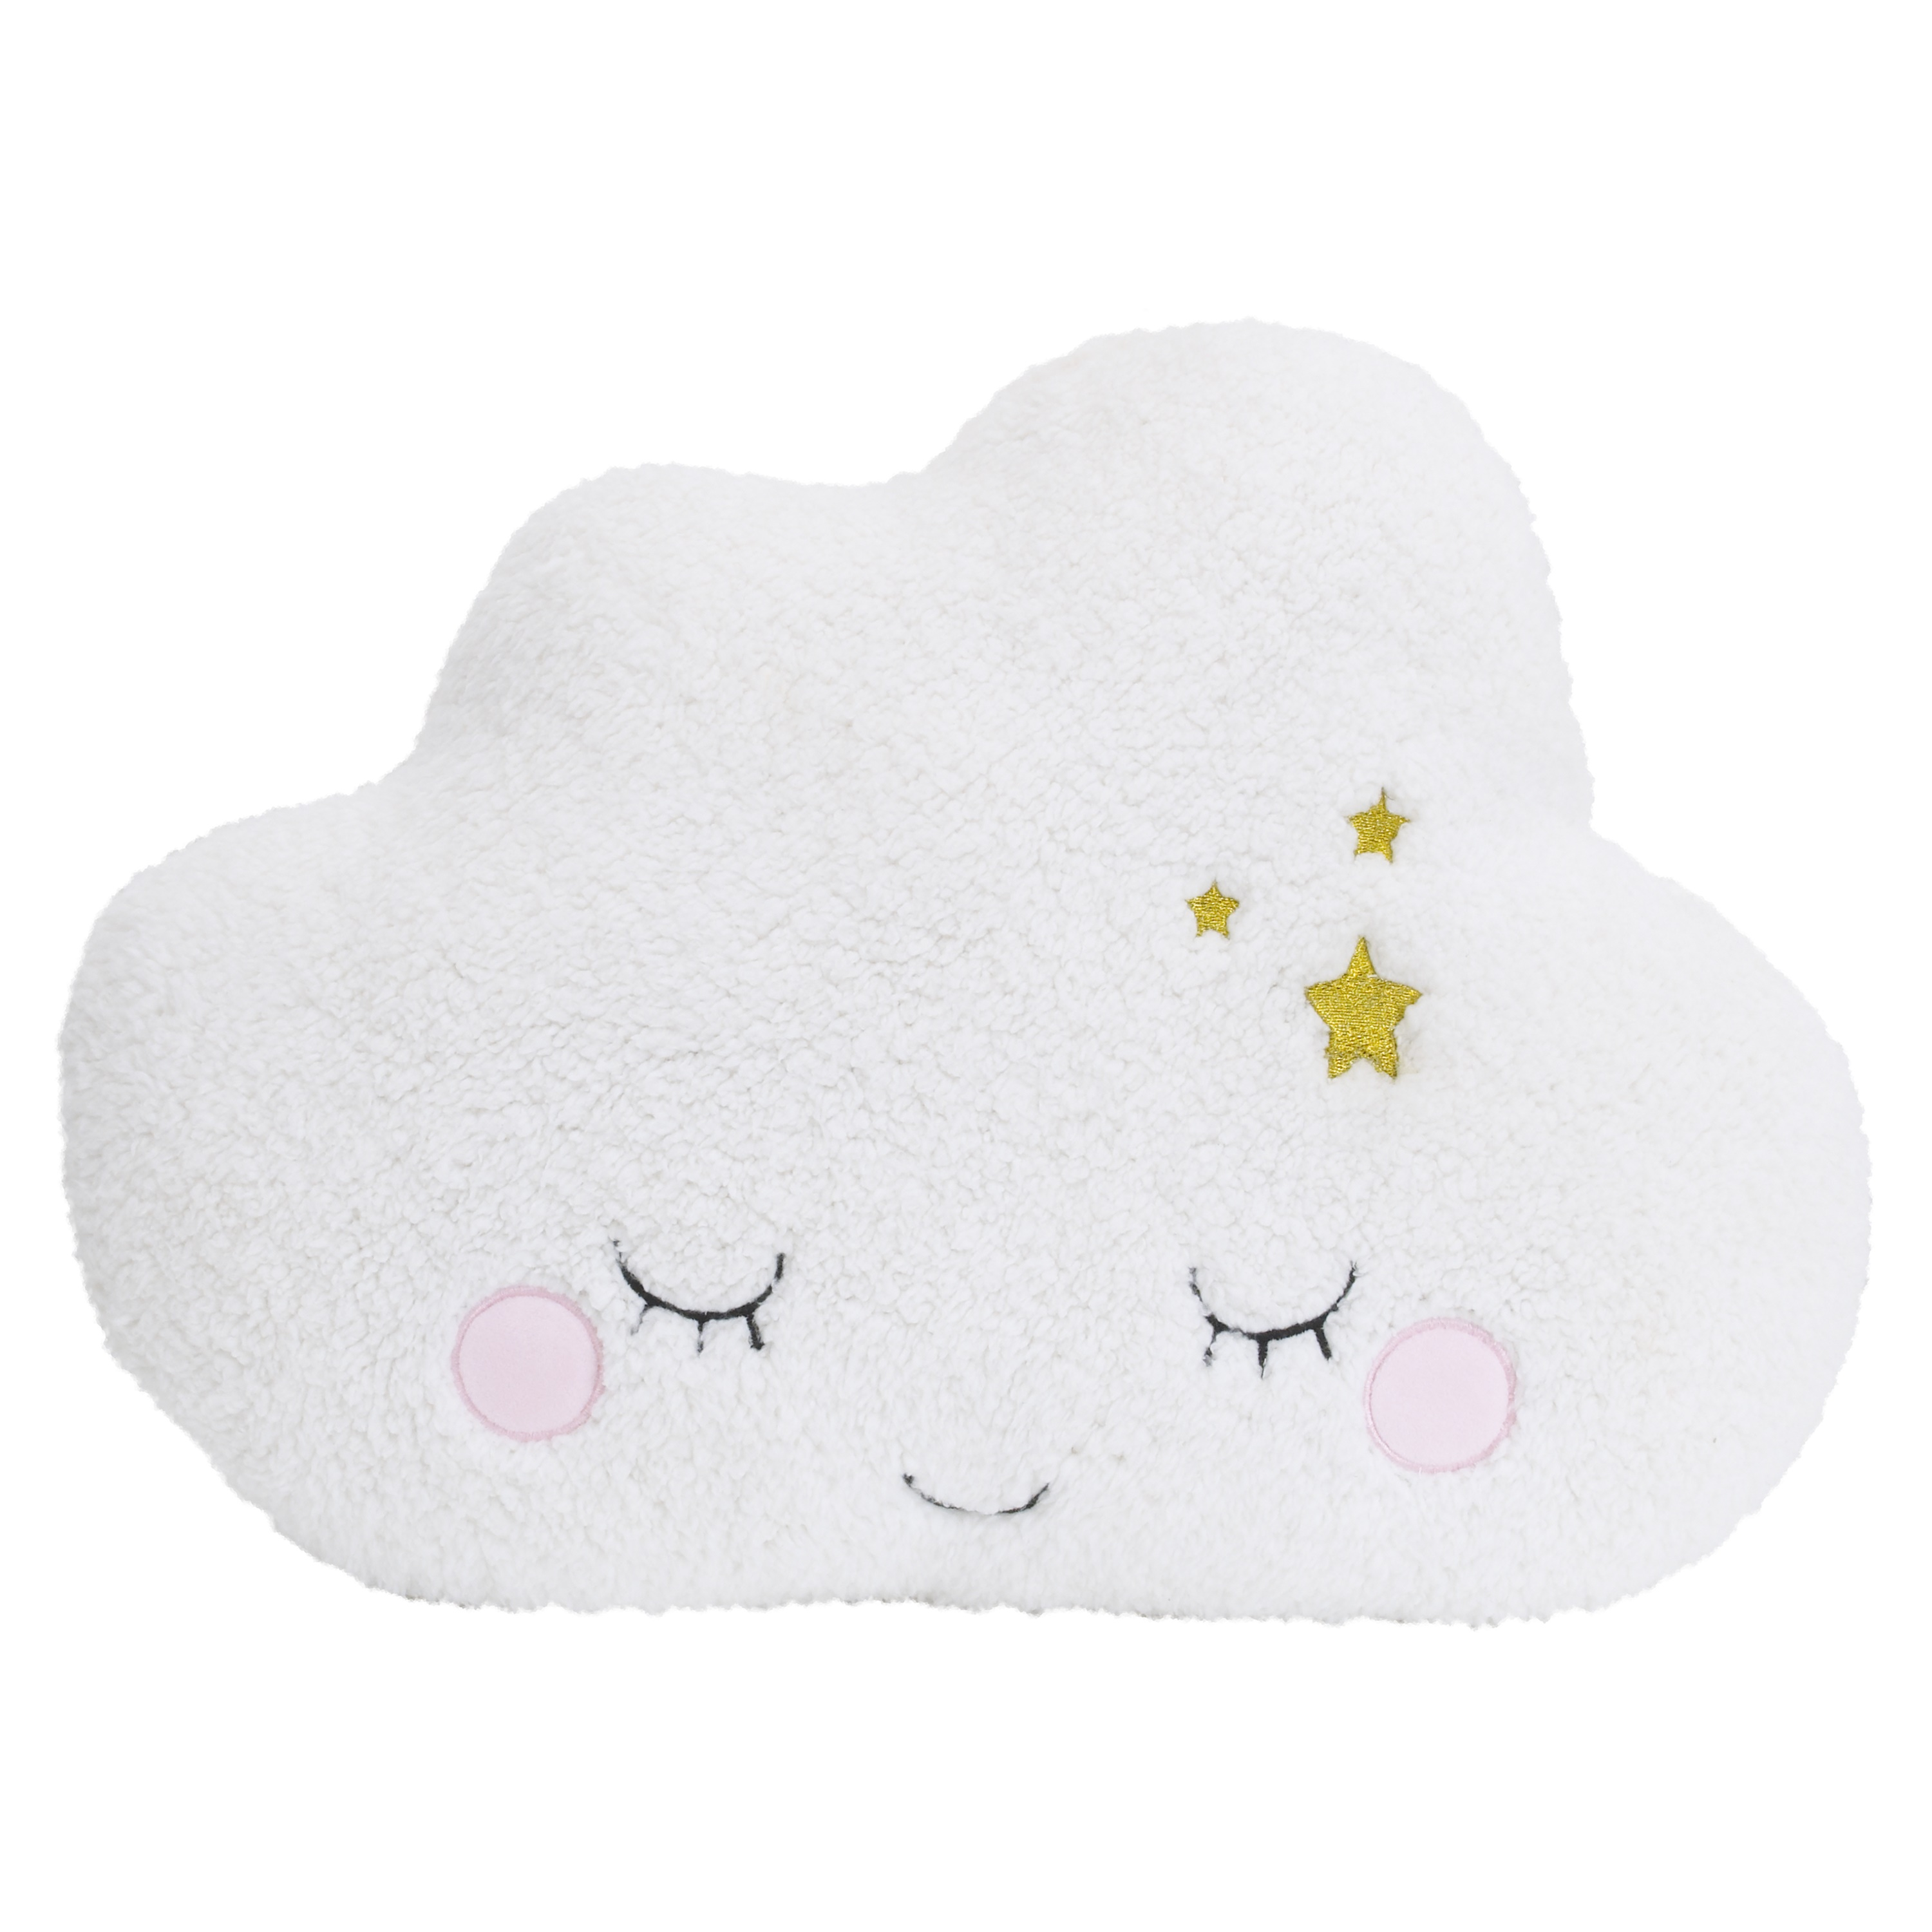 little love by nojo cloud shaped infant and toddler decorative pillow